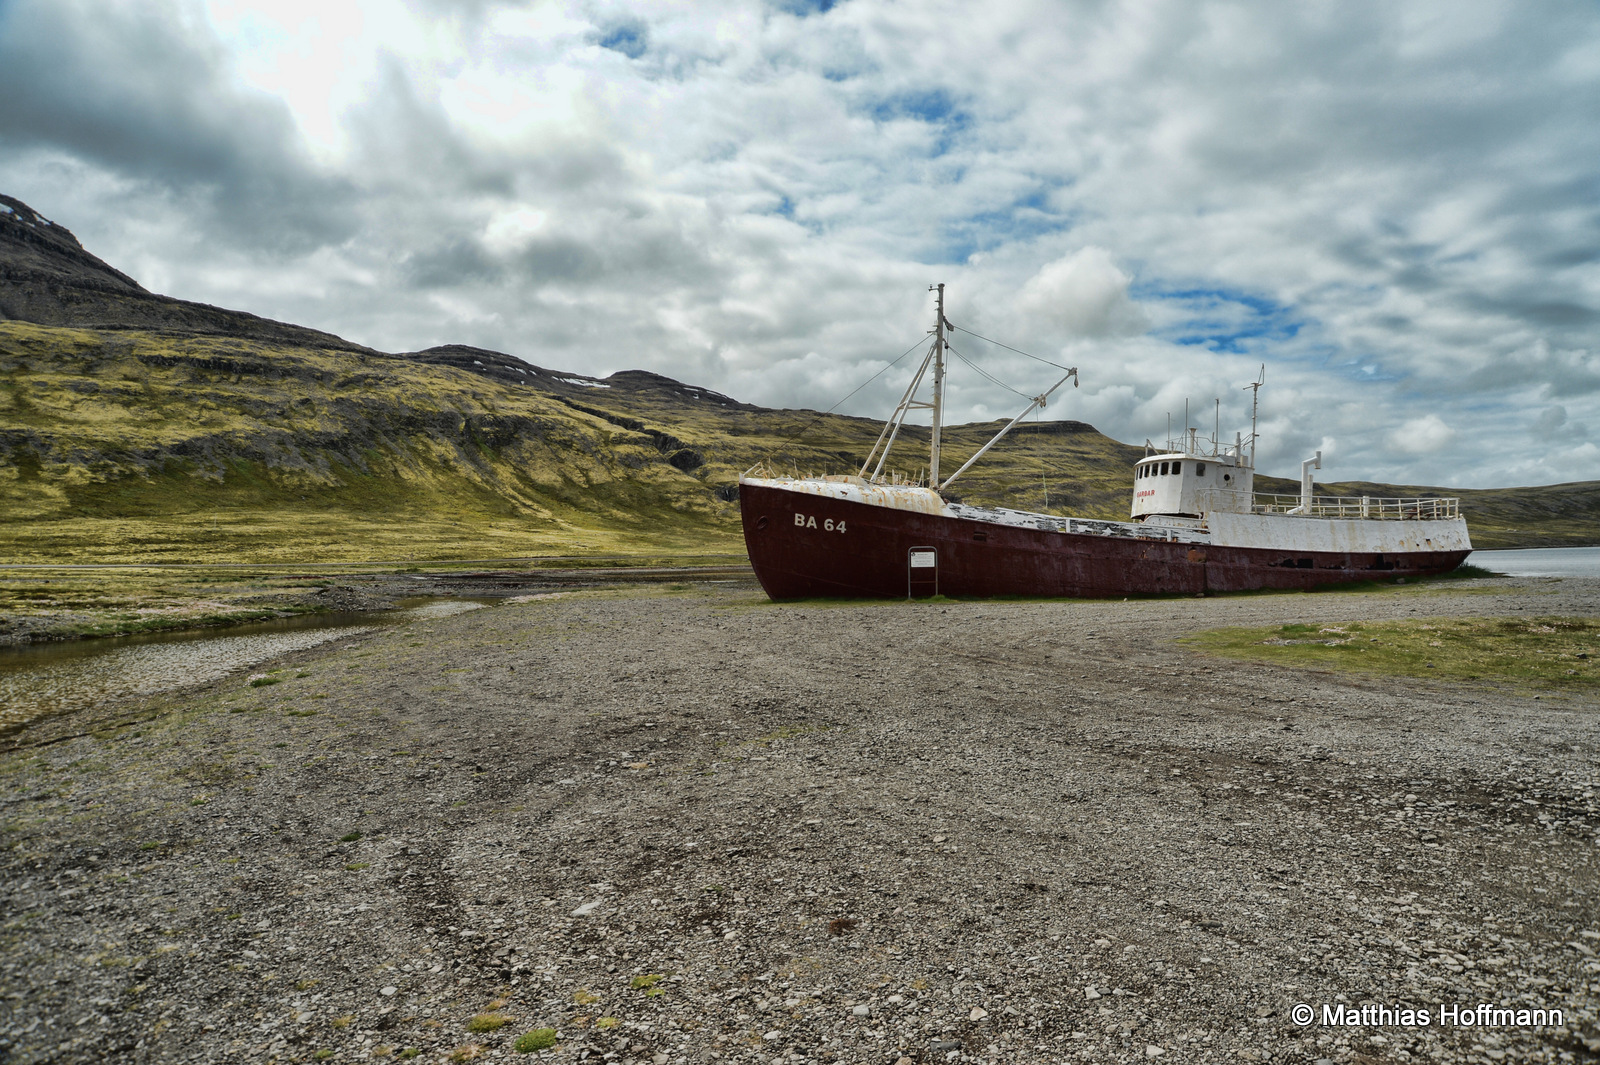 Island | Garðar BA 64 – the oldest steel-ship in Iceland